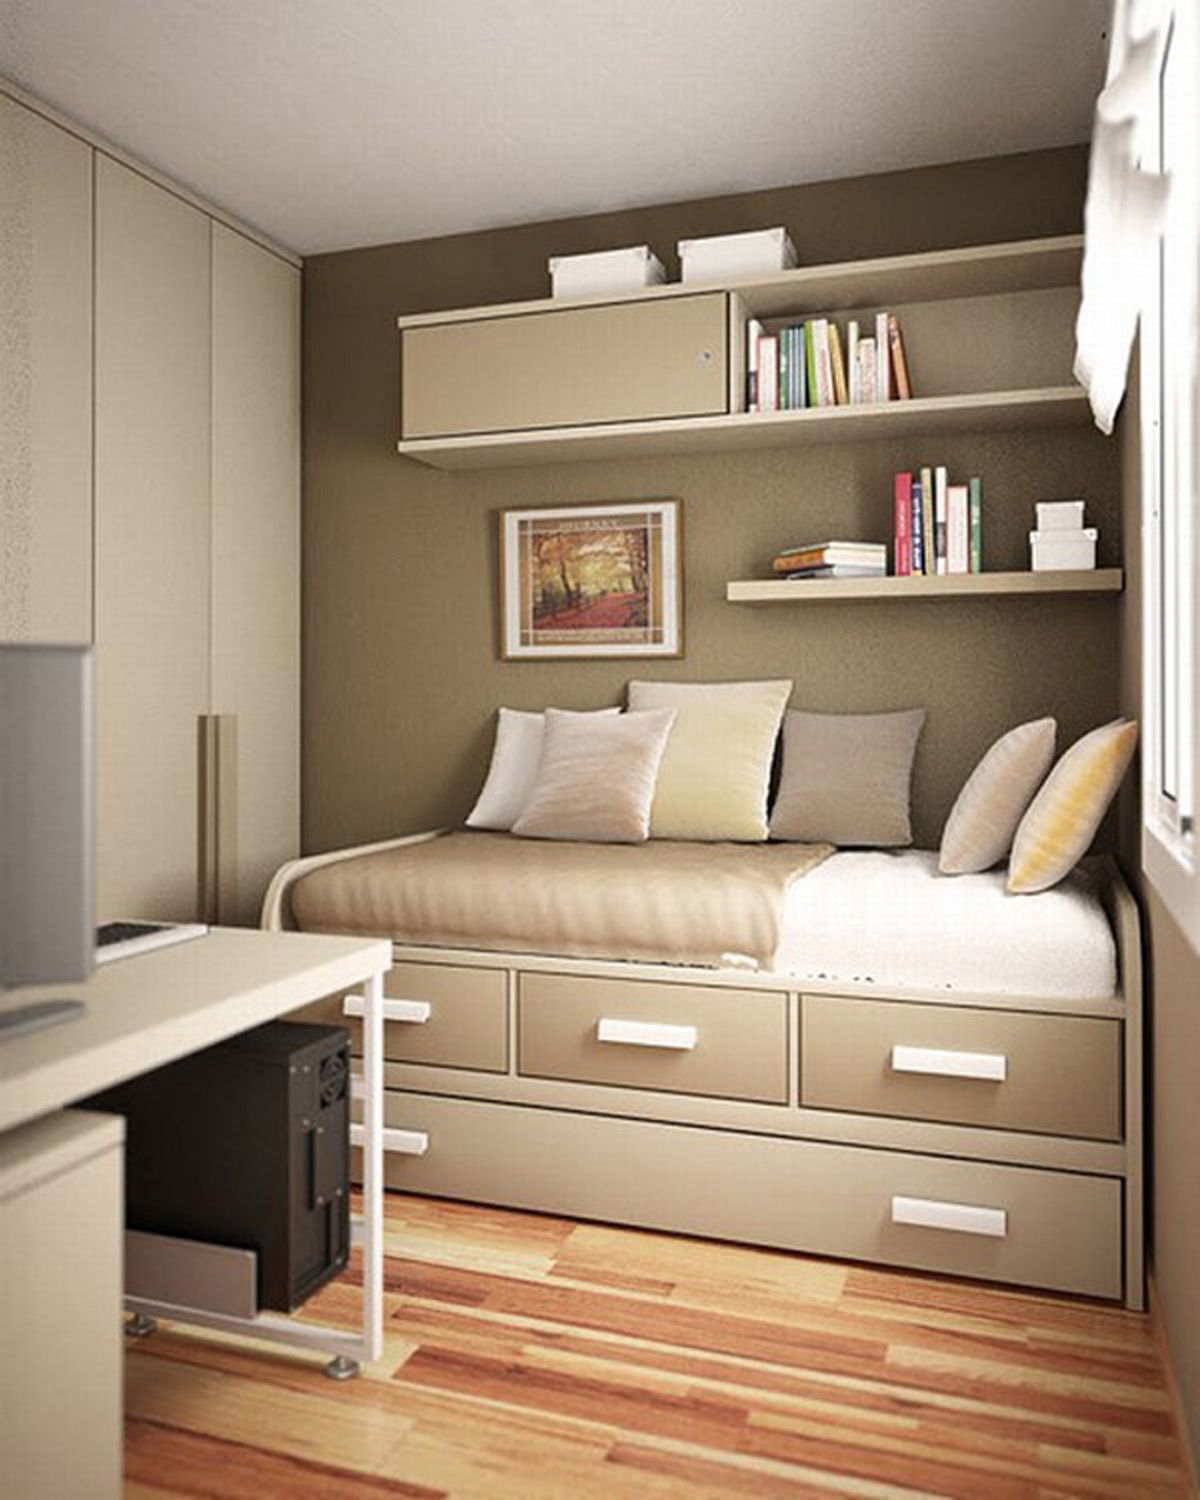 Contemporary Small Bedroom Ideas. Contemporary Small Bedroom Ideas   Small rooms  Bedroom ideas and